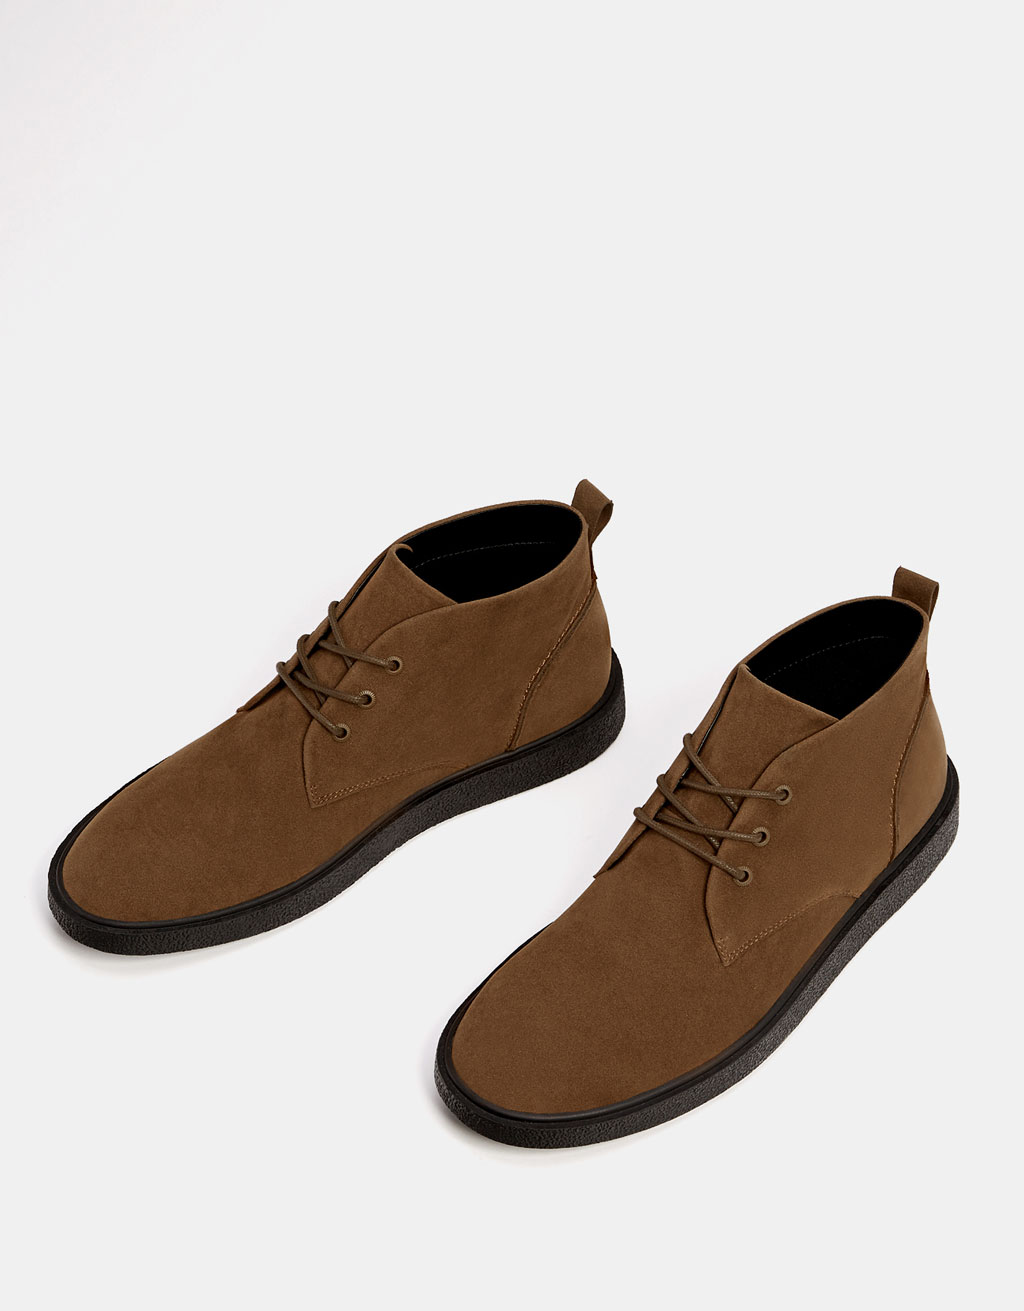 Men's lace-up ankle boots with contrasting soles